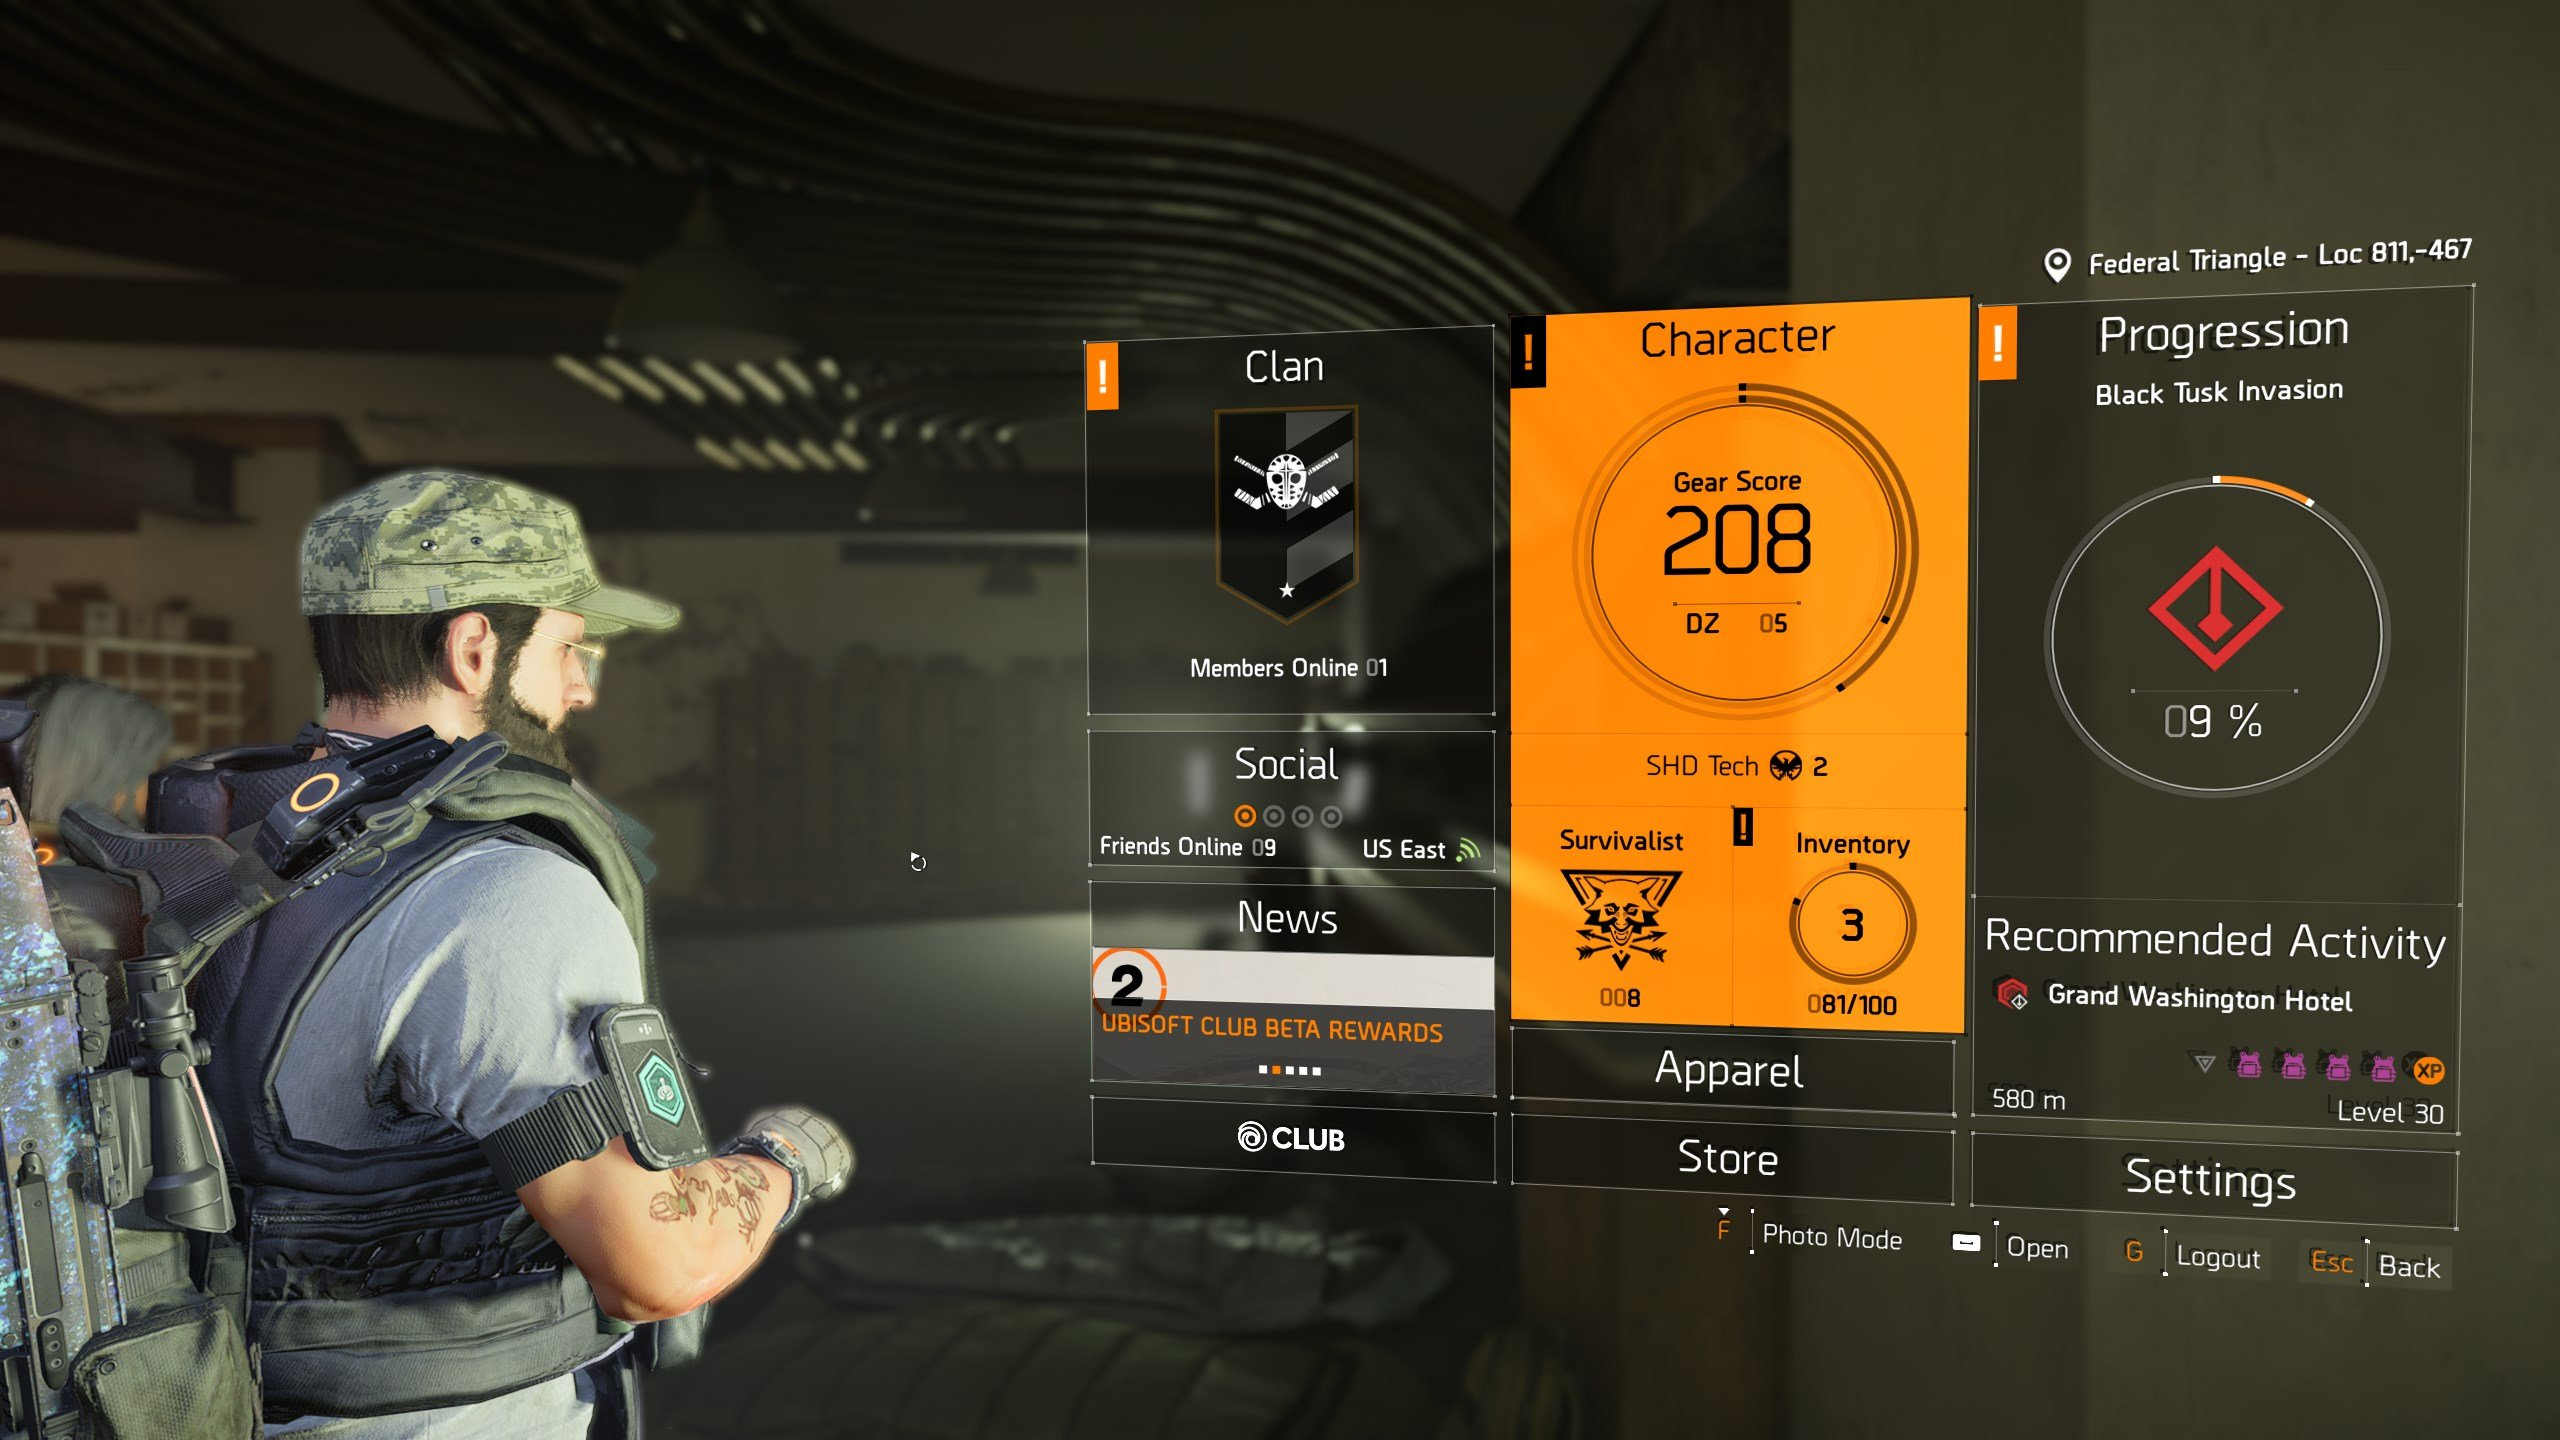 how to increase world tier in The Division 2 - gear score in character screen